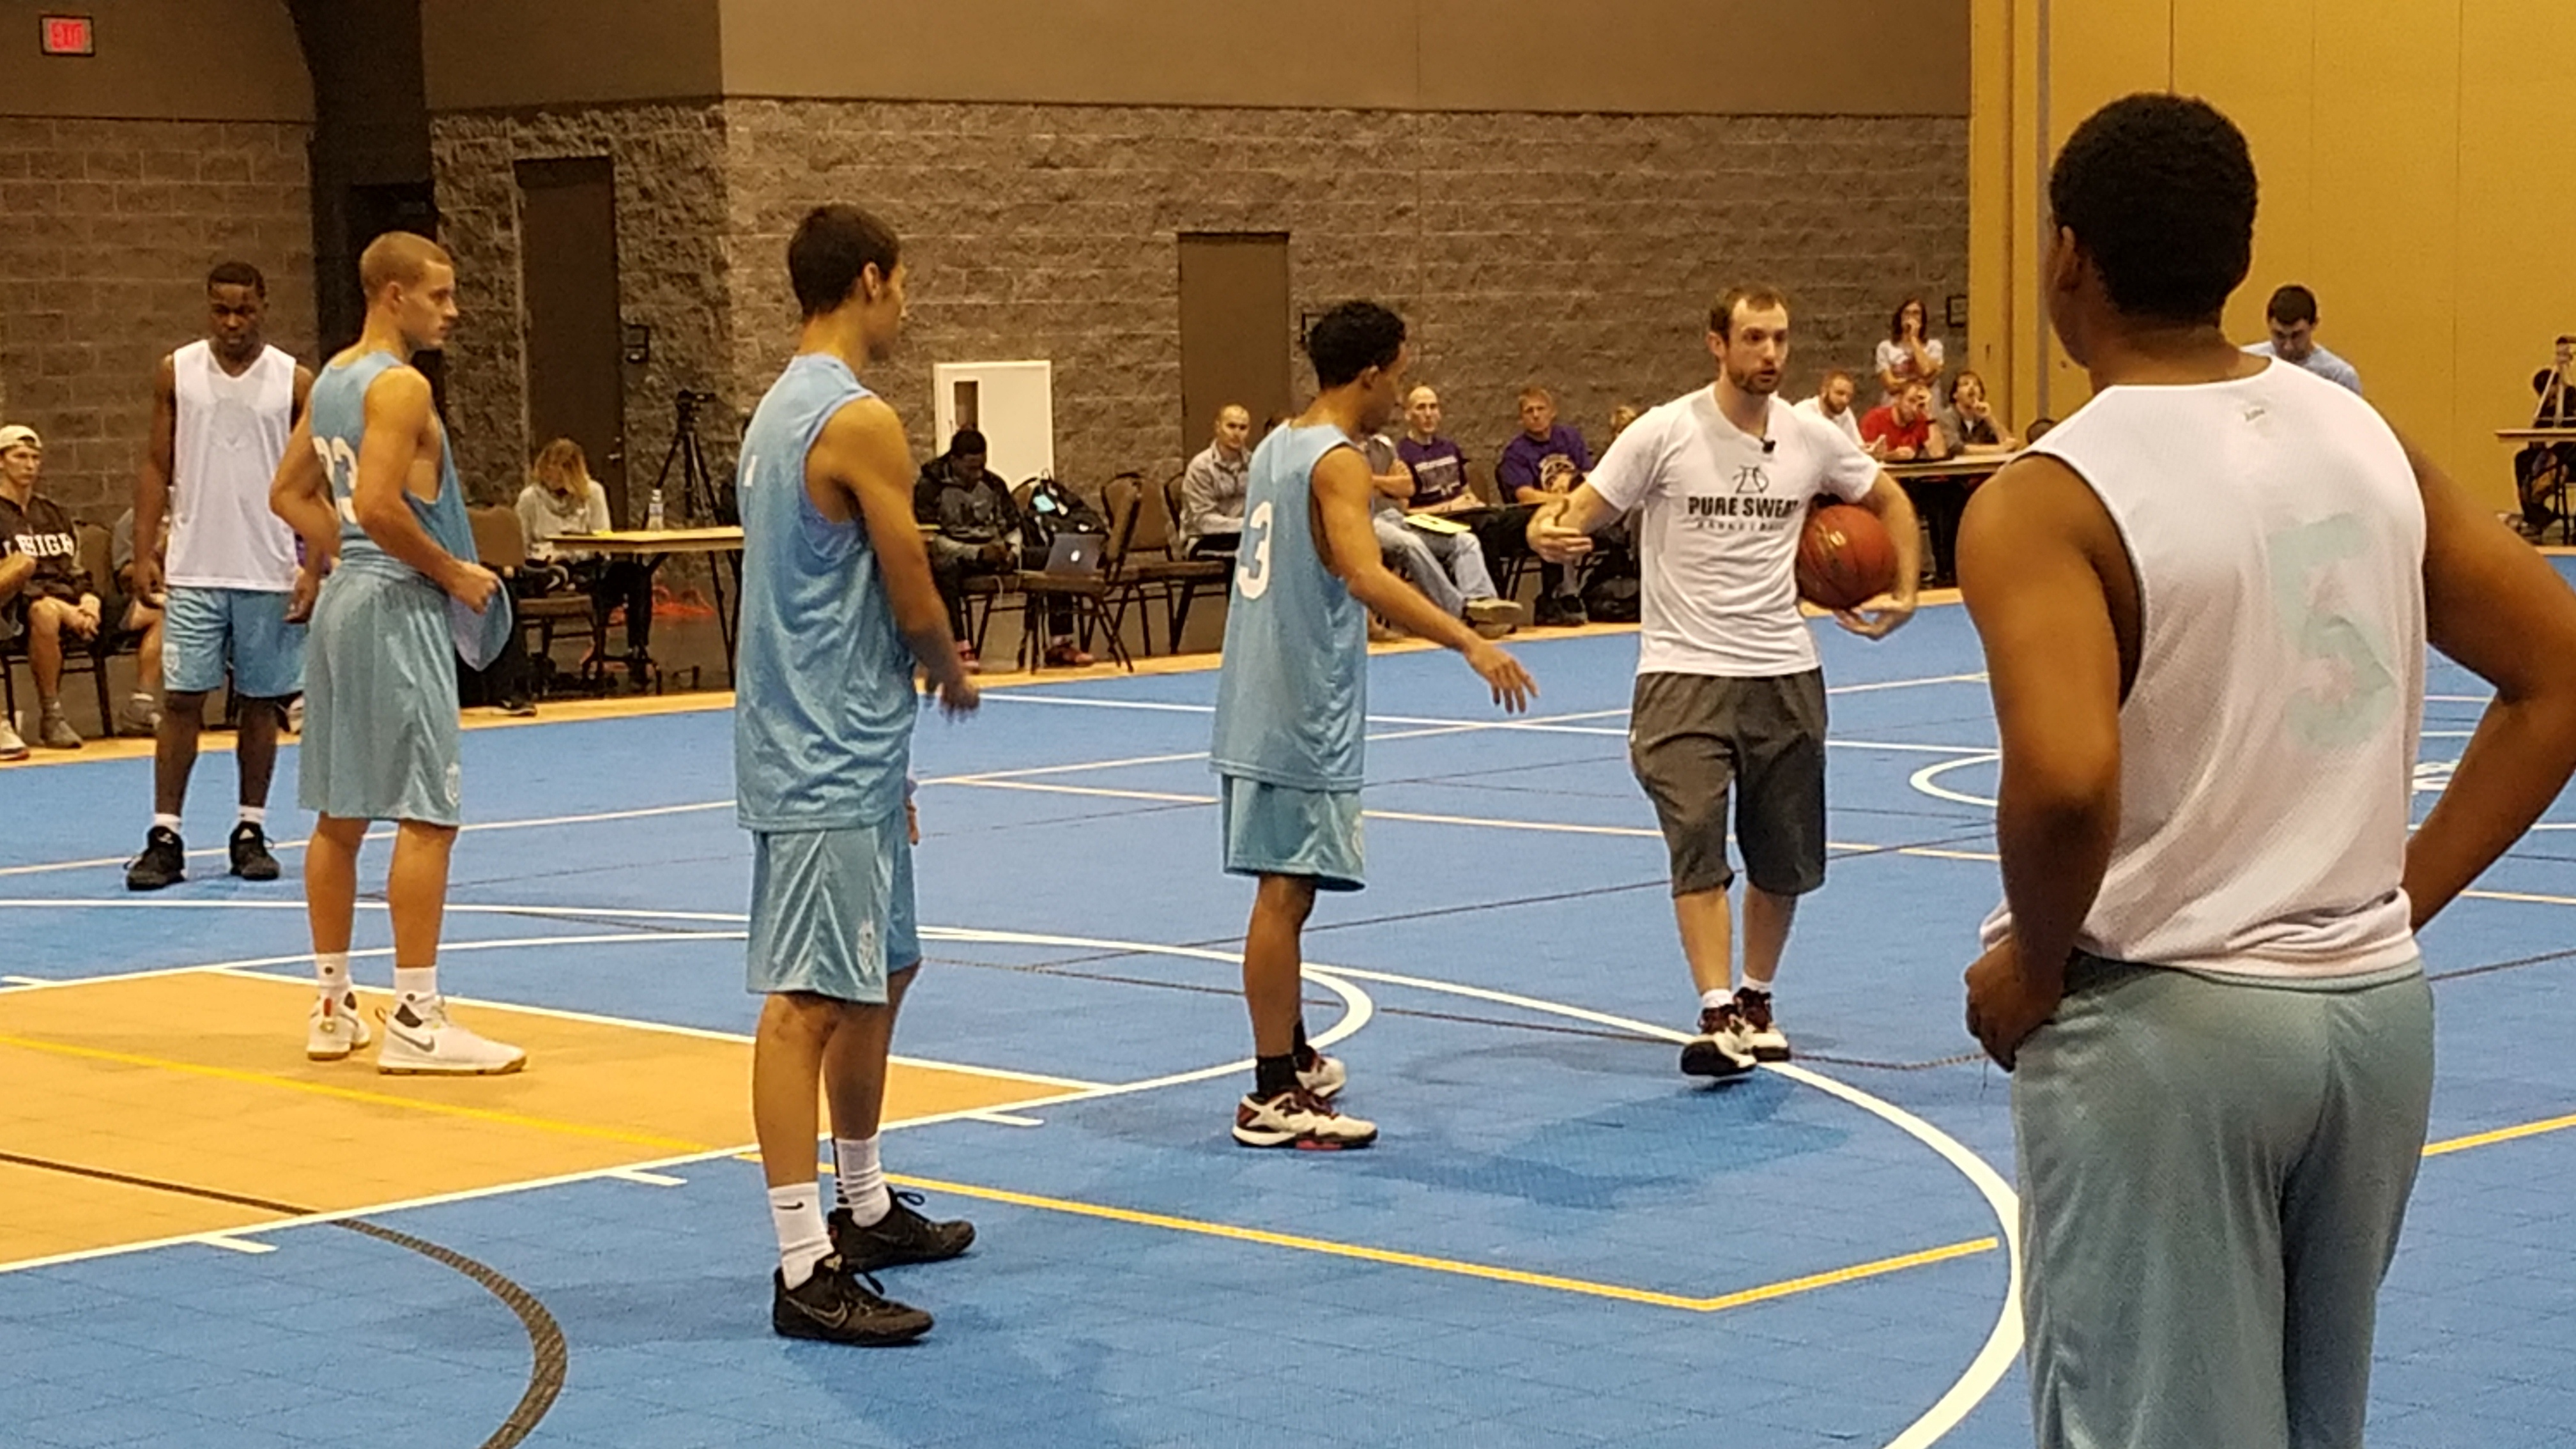 Basketball Coaching Clinics: Pure Sweat Basketball Notes